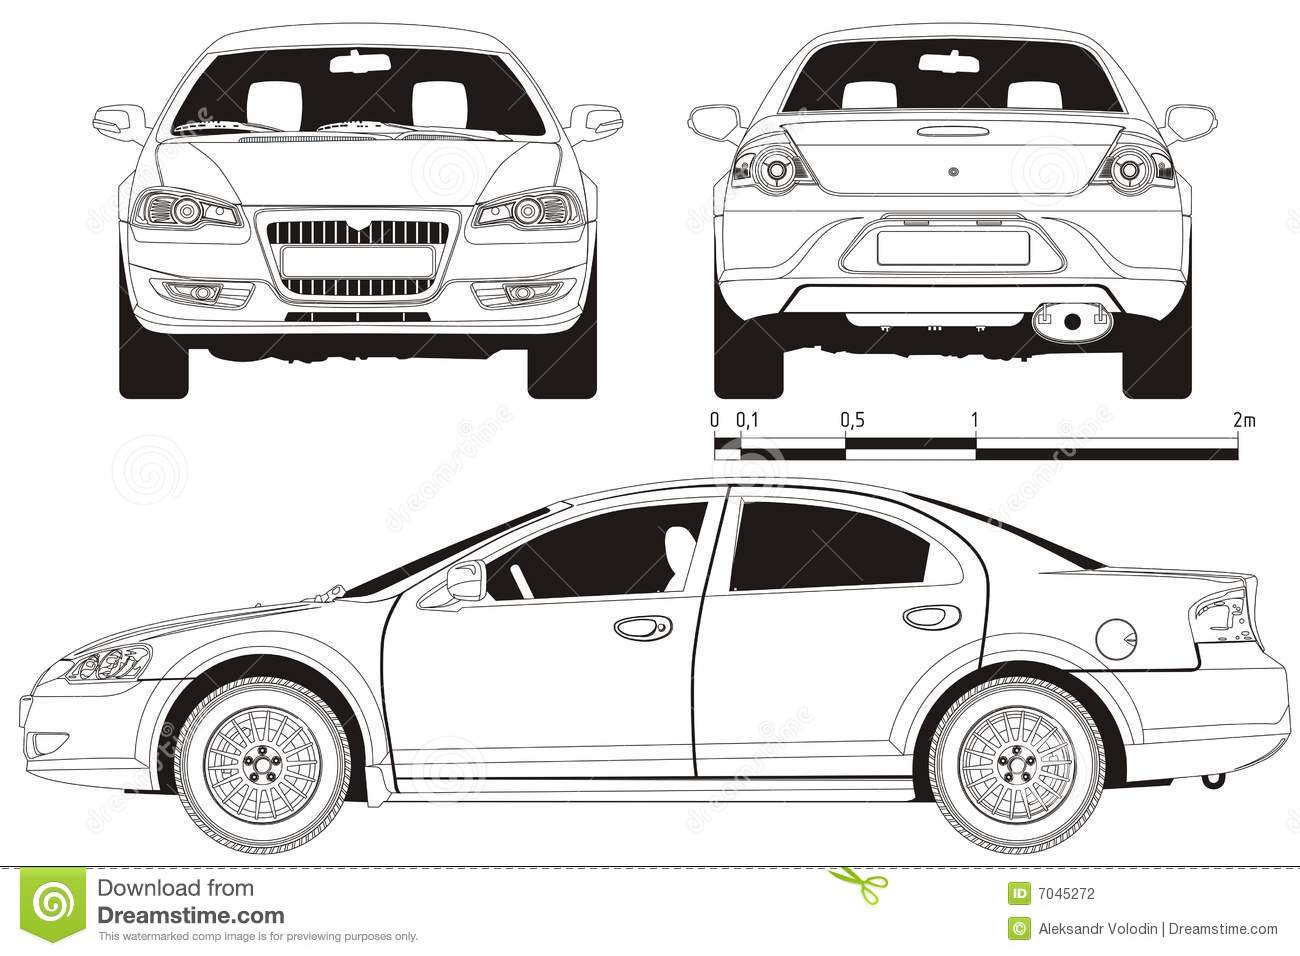 Vector car technical draft stock photography image 7045272 for Medidas de un carro arquitectura